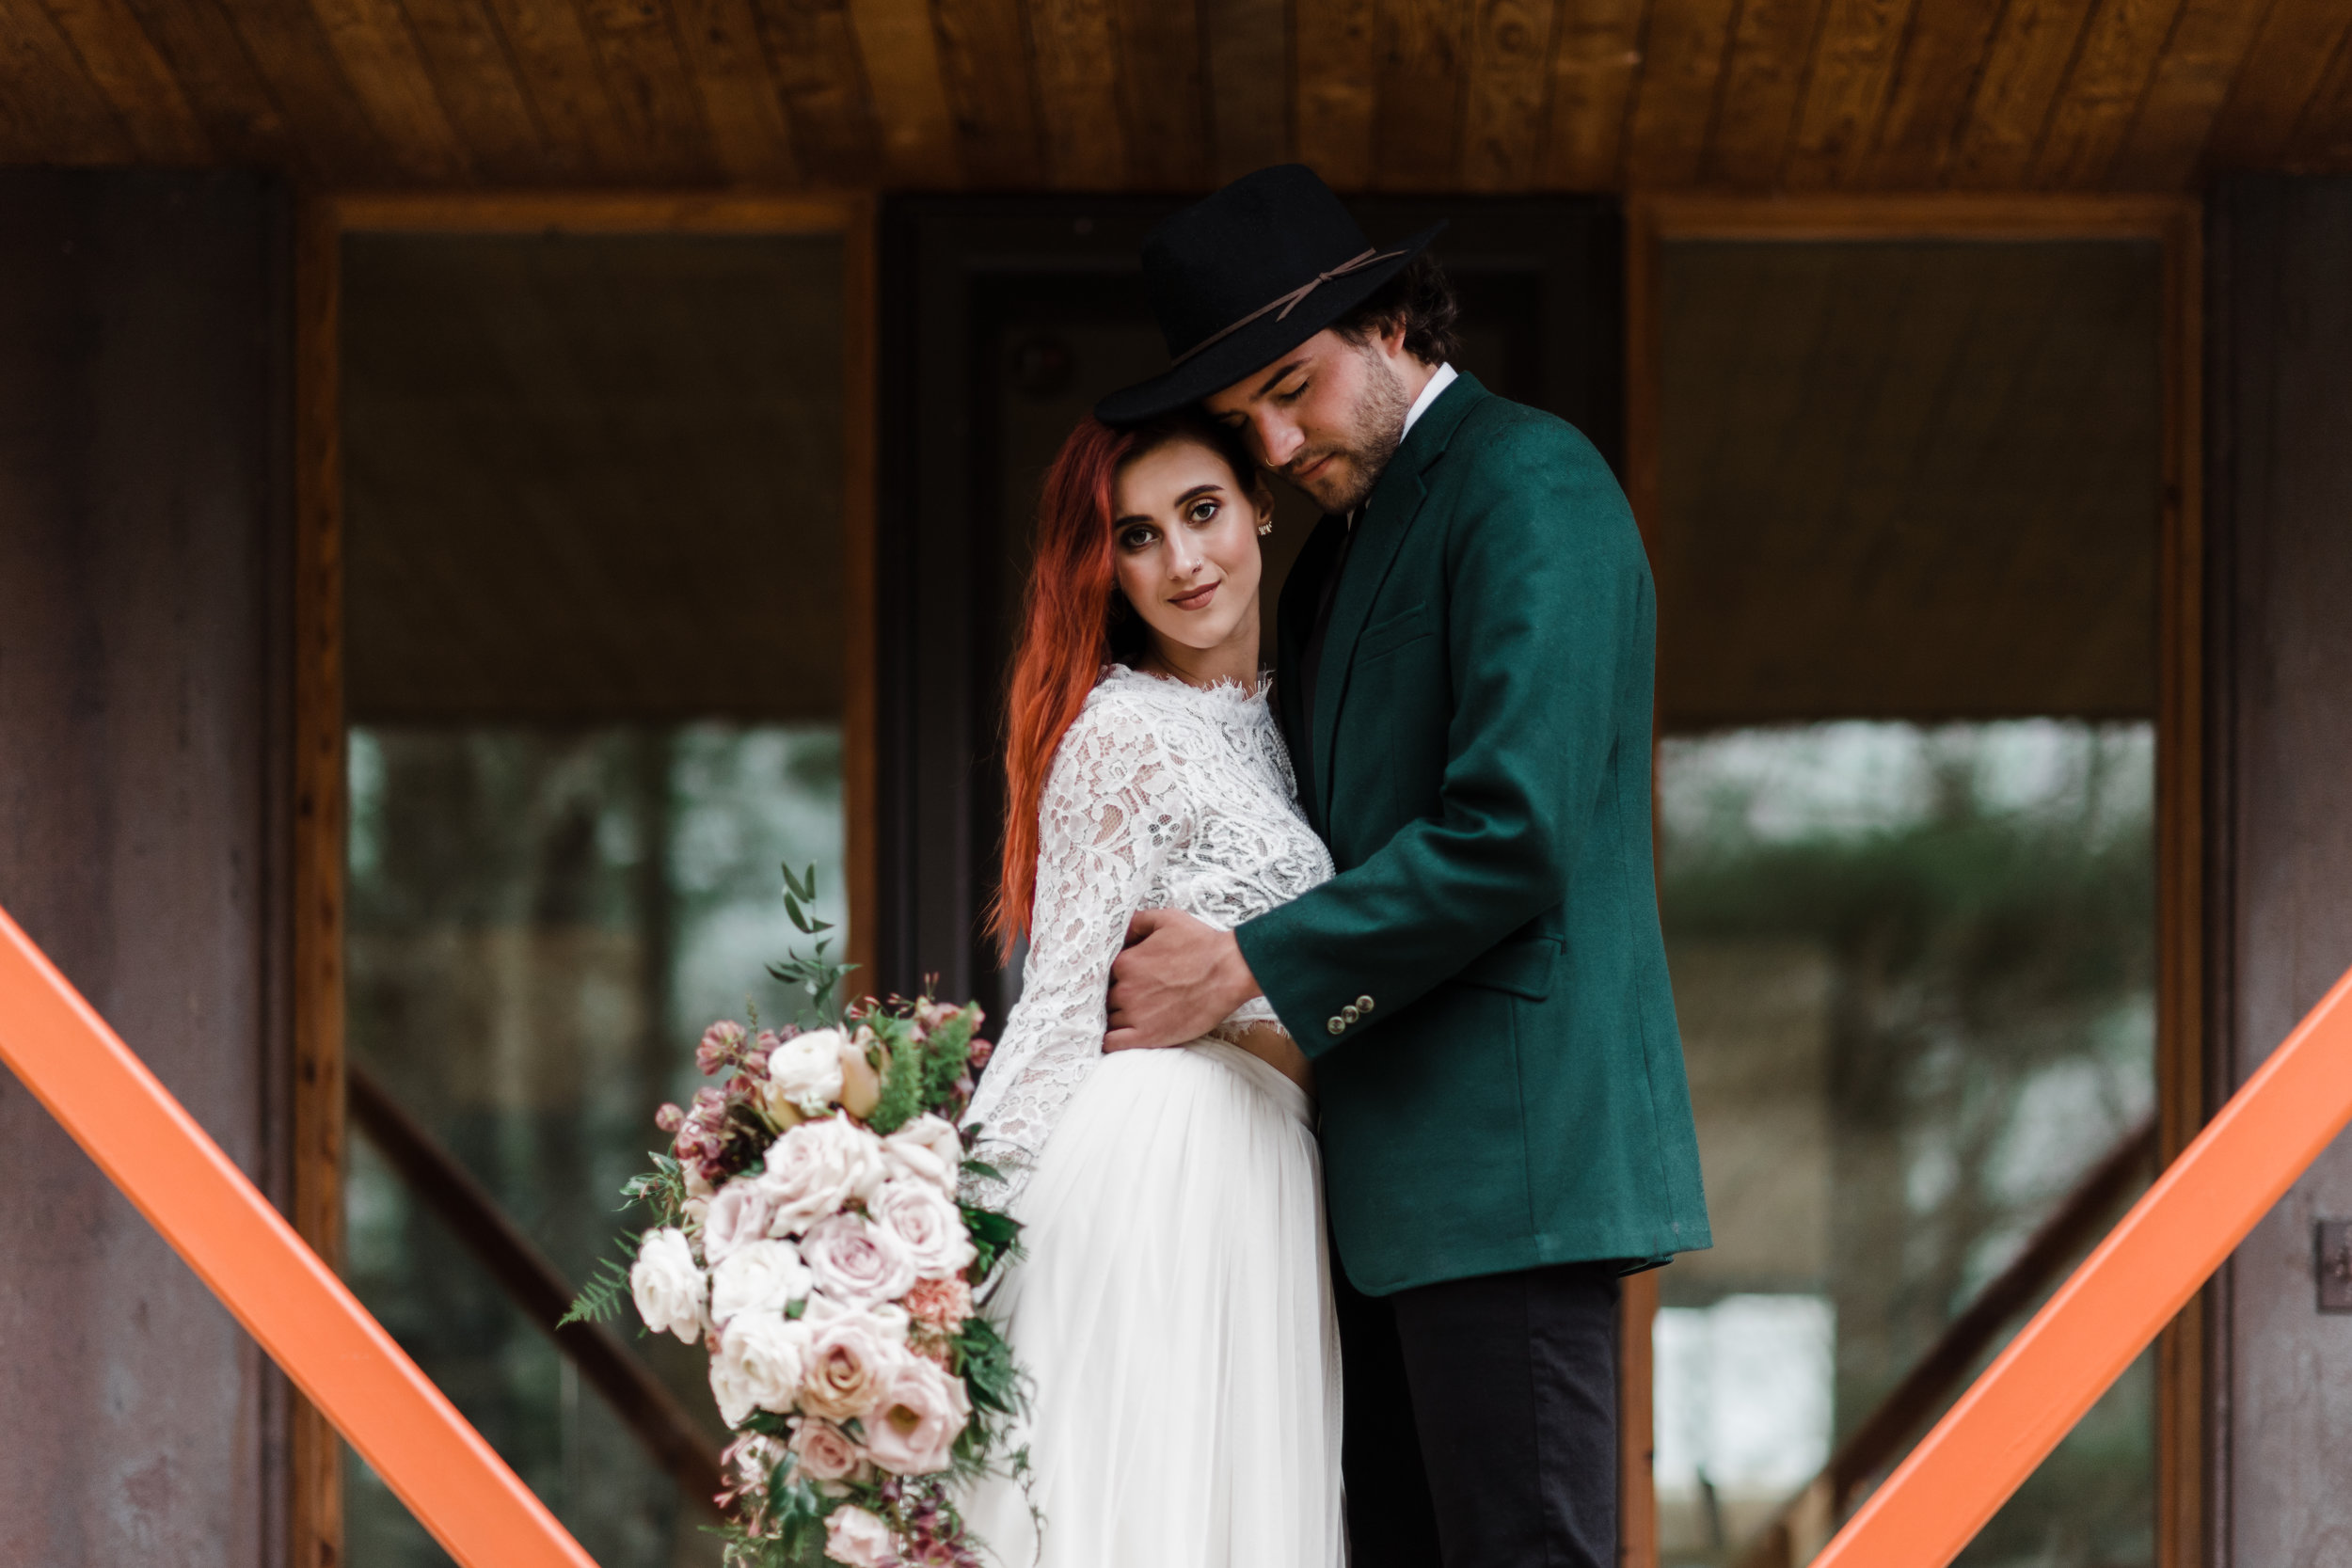 Groom in green jacket and black fedora and bride in lace and beaded crop top and flowing skirt in front of door with orange beams.